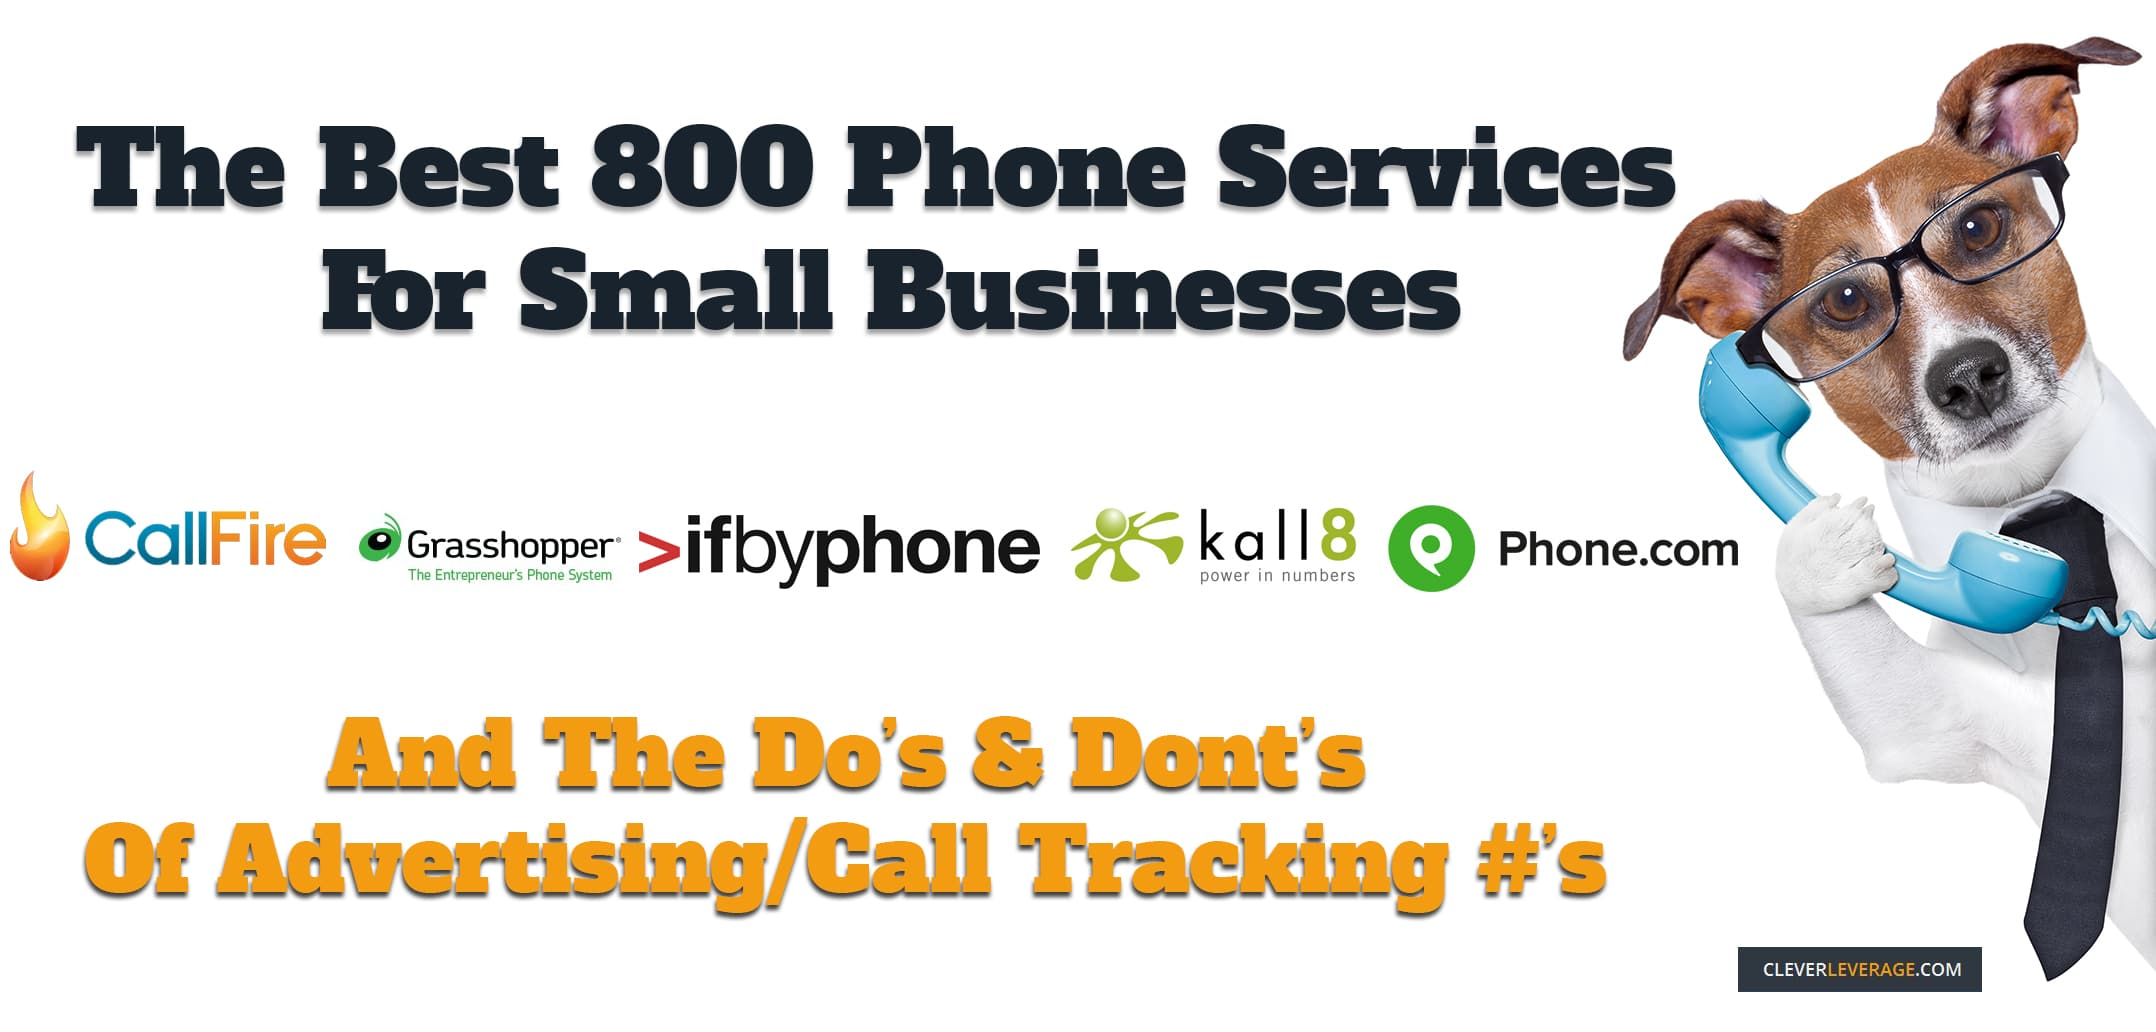 Top 5 Best 800 Number Phone Services For Small Businesses 10mo